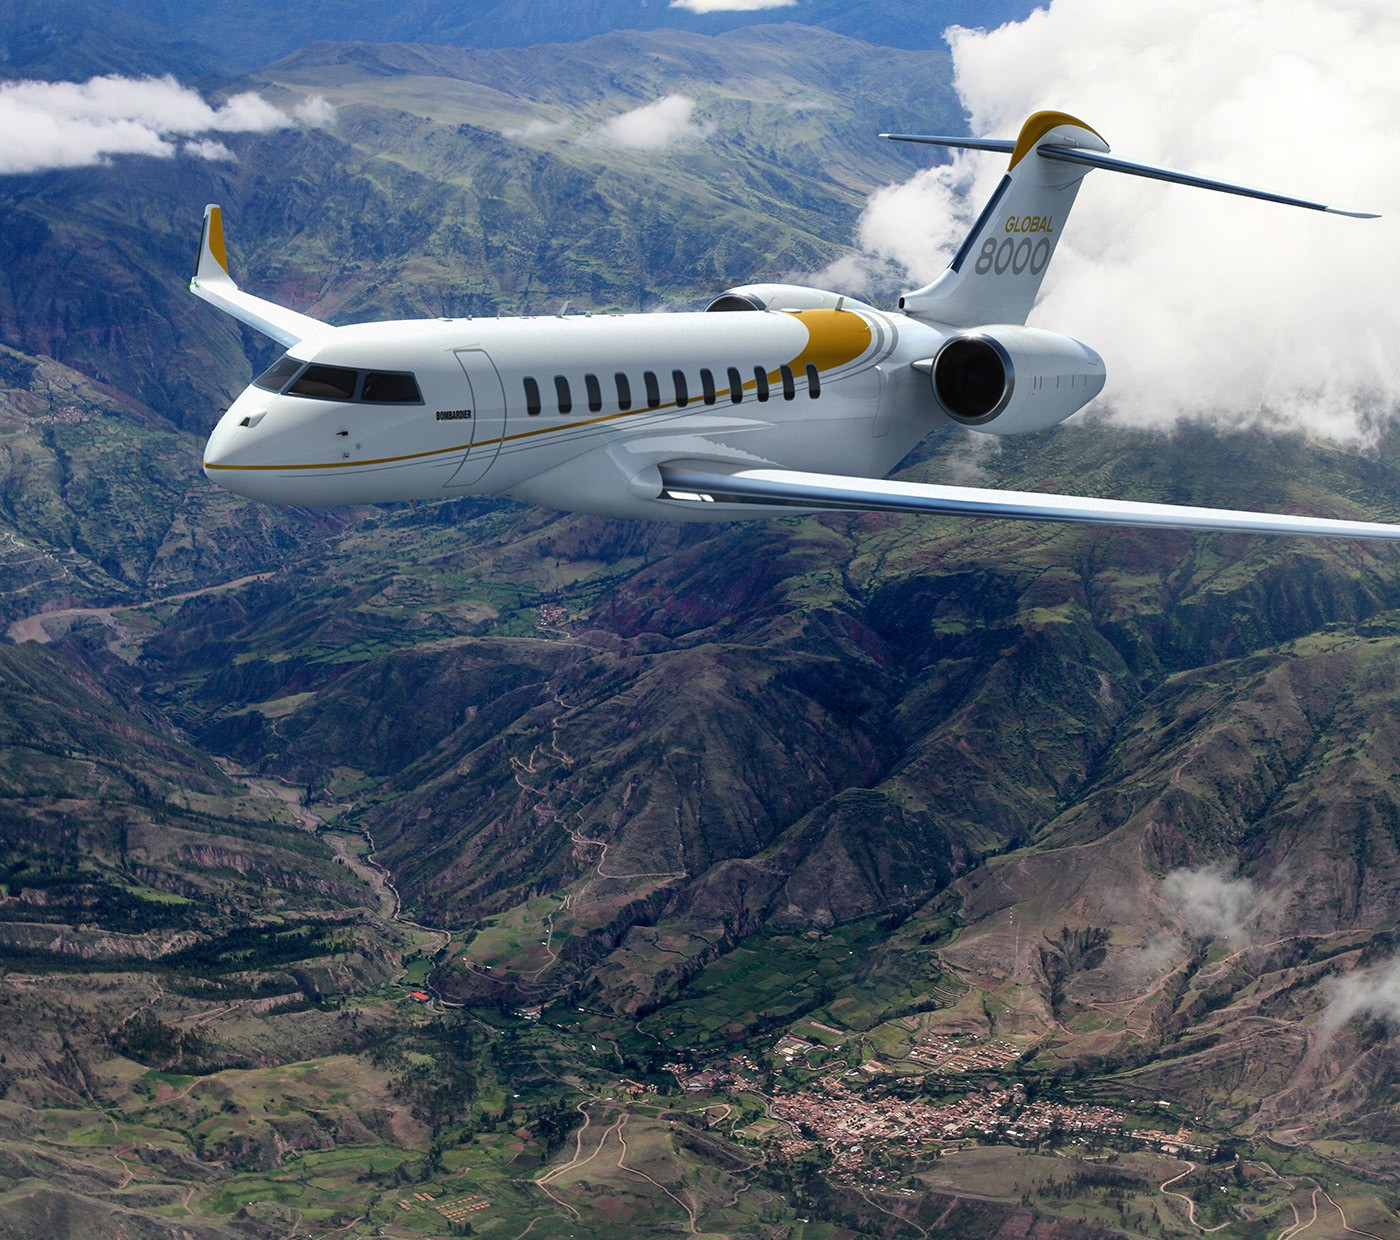 Bombardier private jet charter Bombardier business jet Bombardier corporate jet Bombardier charter10 - Bombardier private jet builder Bombardier private charter and Bombardier jet broker